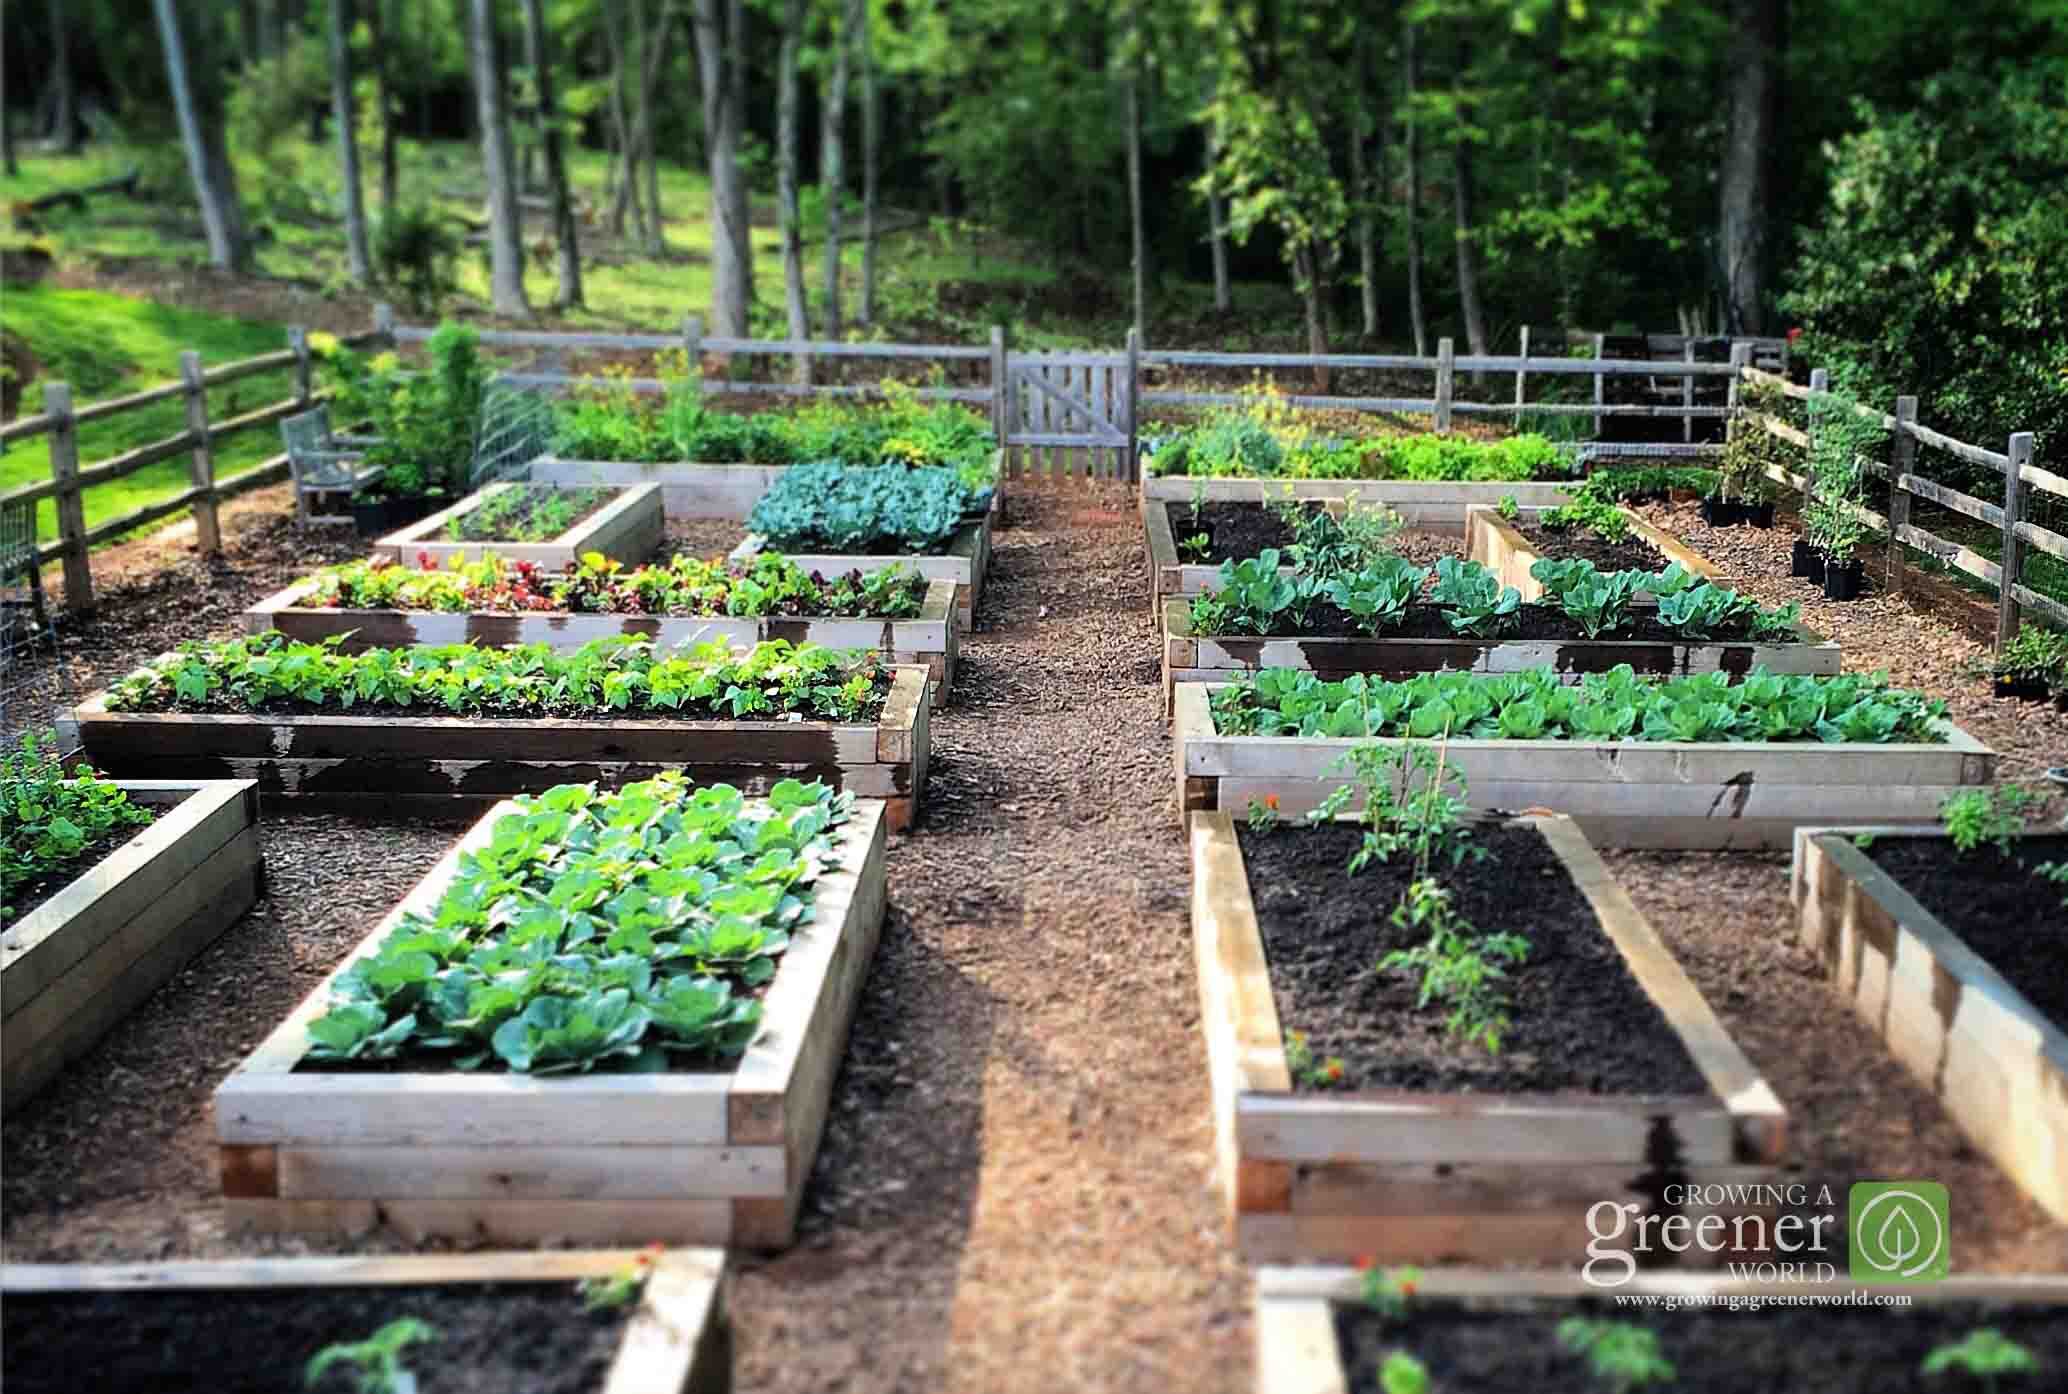 Three Key Benefits of Gardening in Raised Beds - Growing A Greener